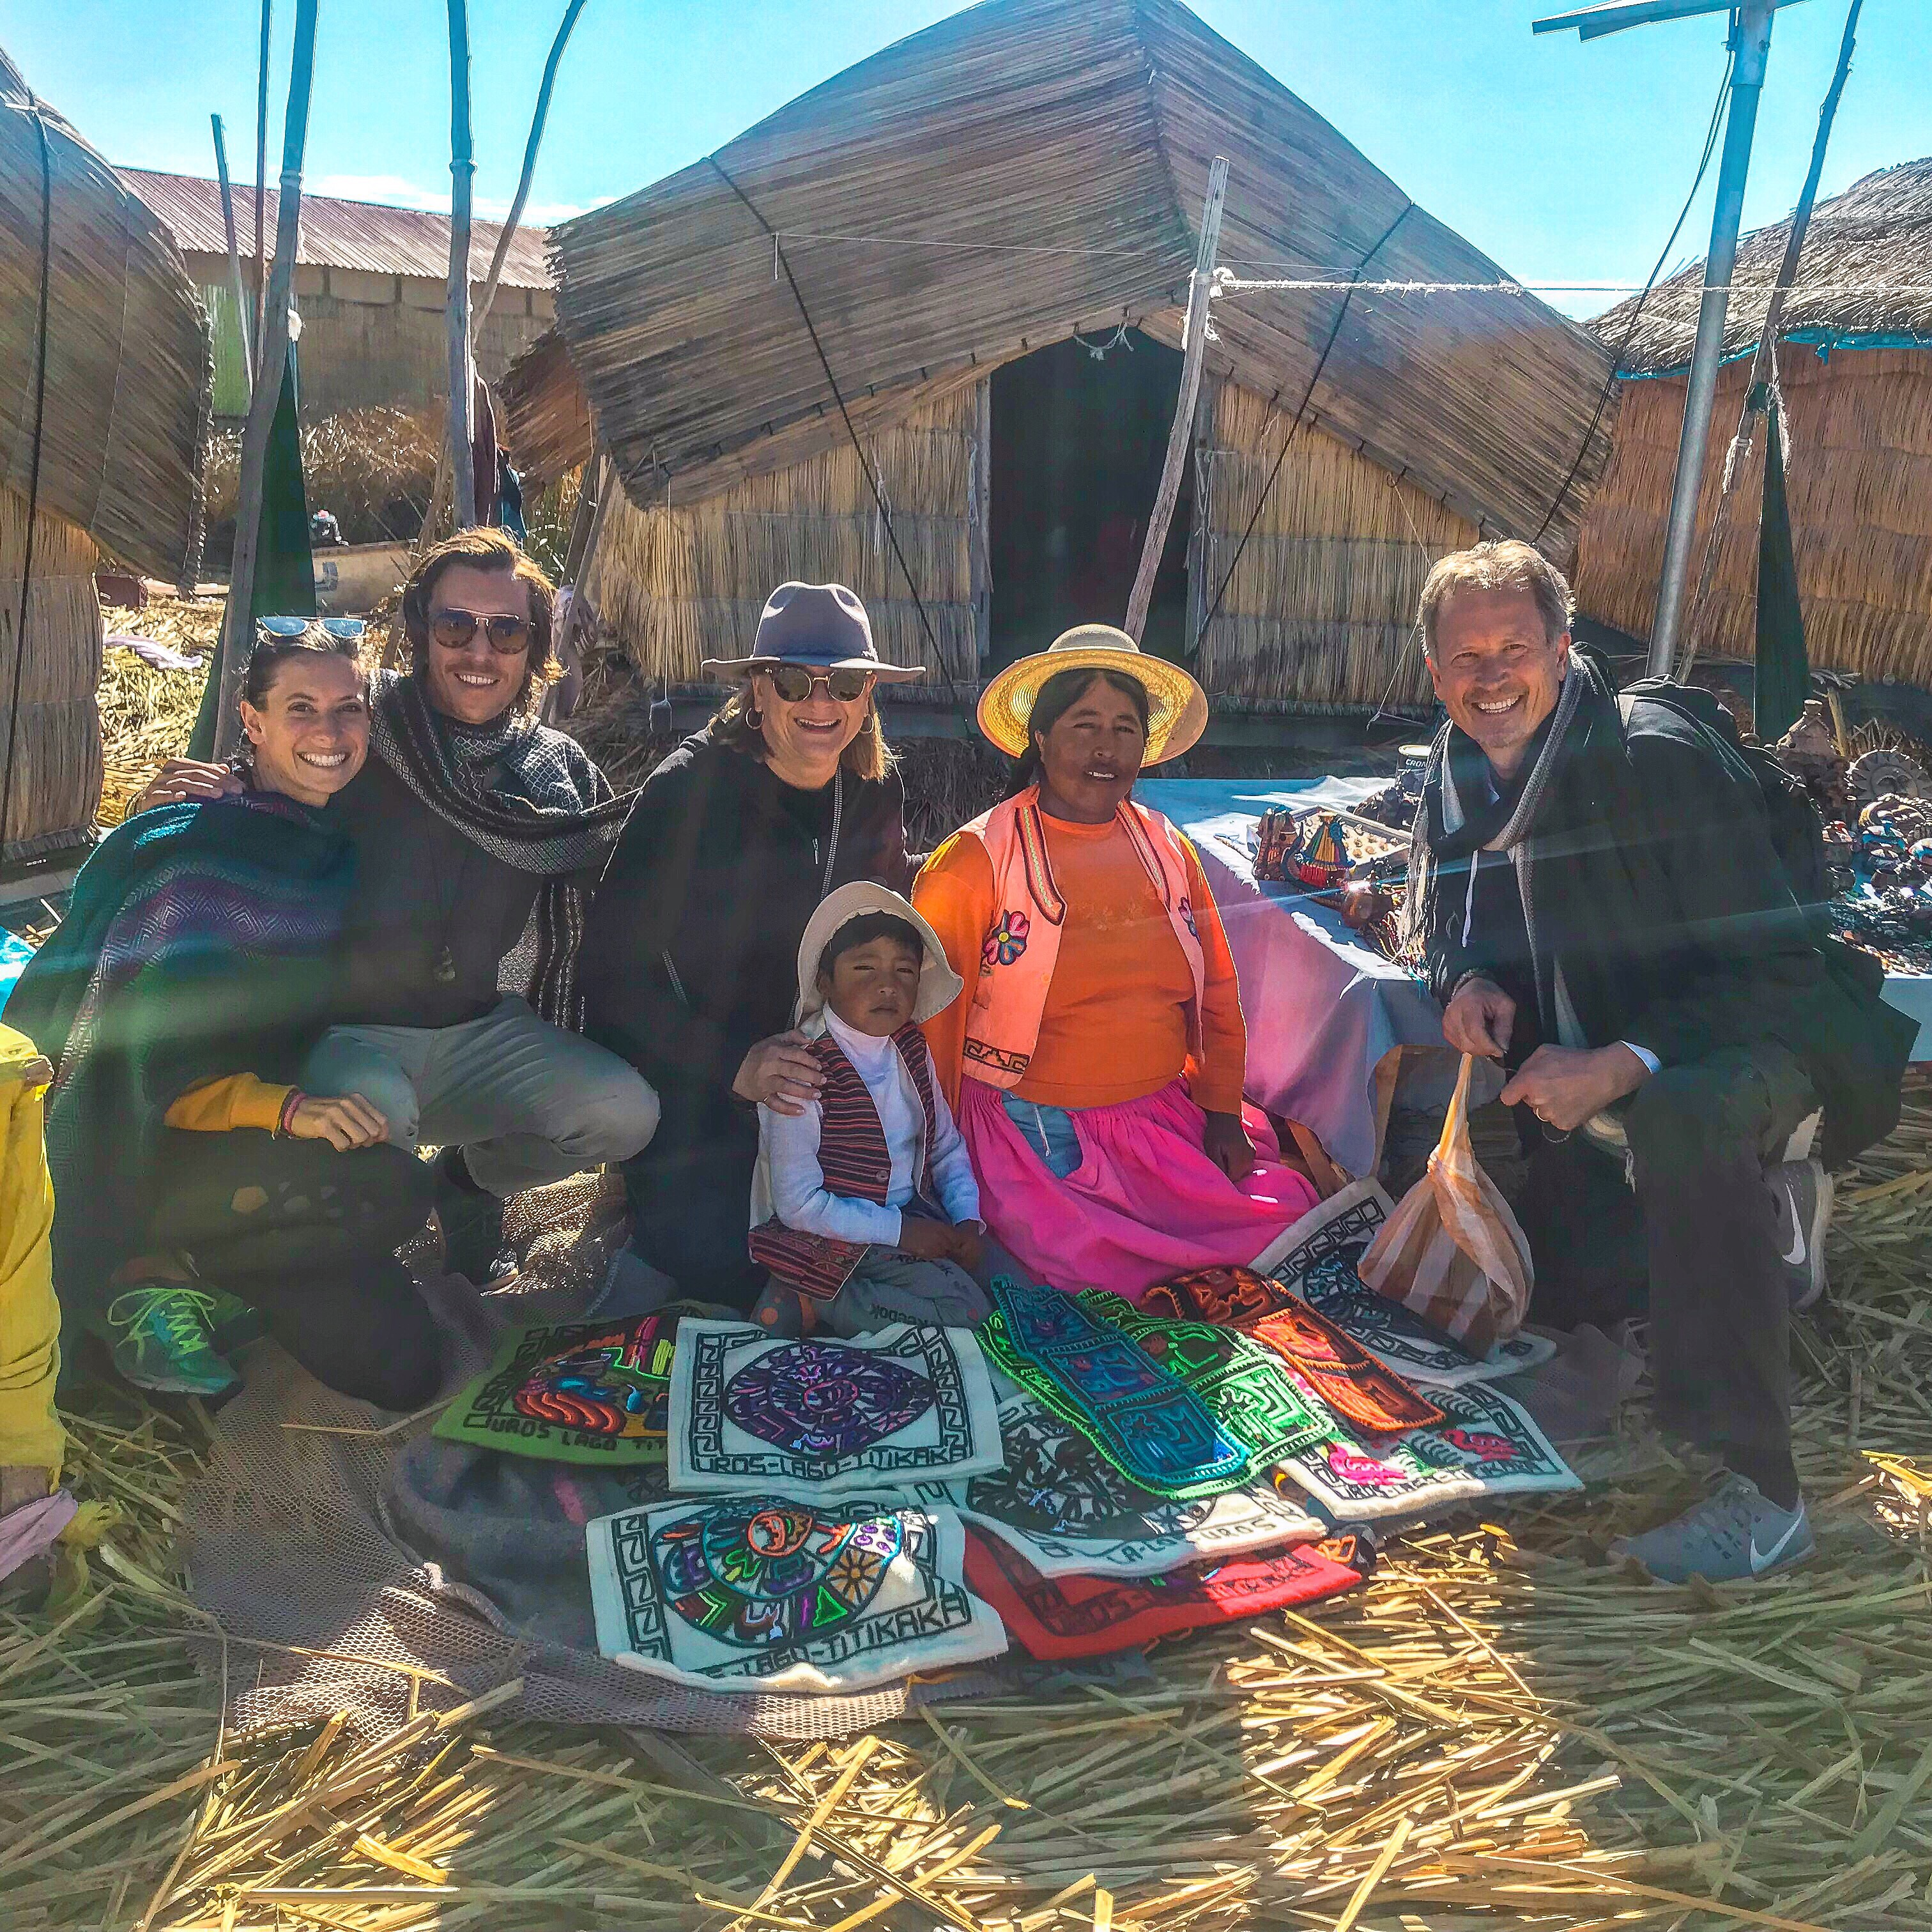 Uros floating islands on the Peru side of Lake Titicaca and the Uros people with their artisan textiles and handiwork.